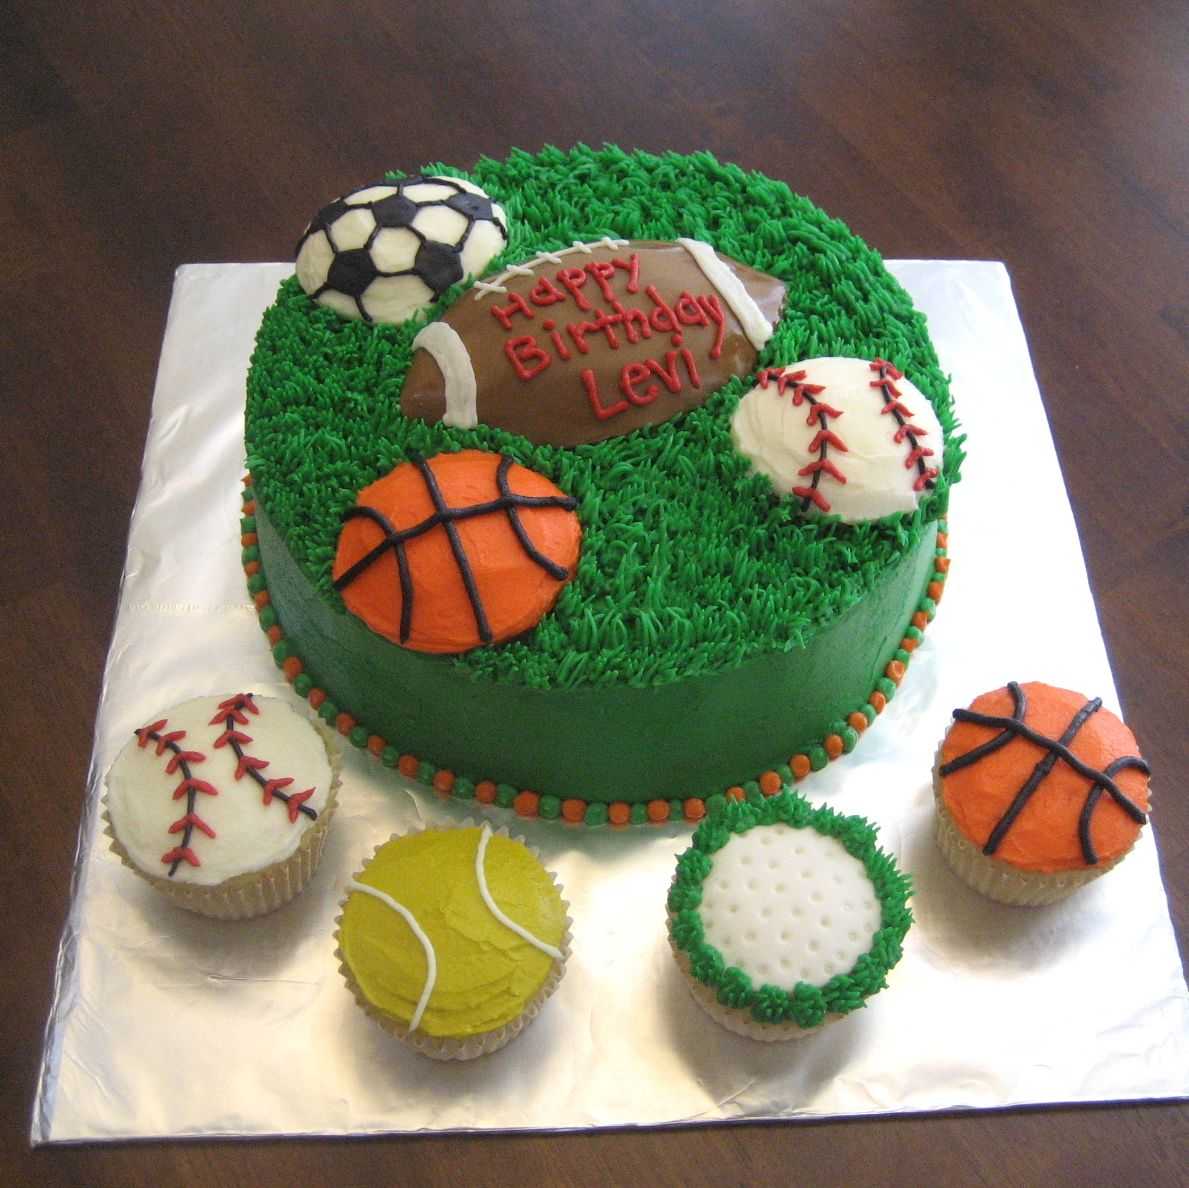 Cake Decorations For Sports : Mimi s Cupcakes: Sports Cake & Cupcakes